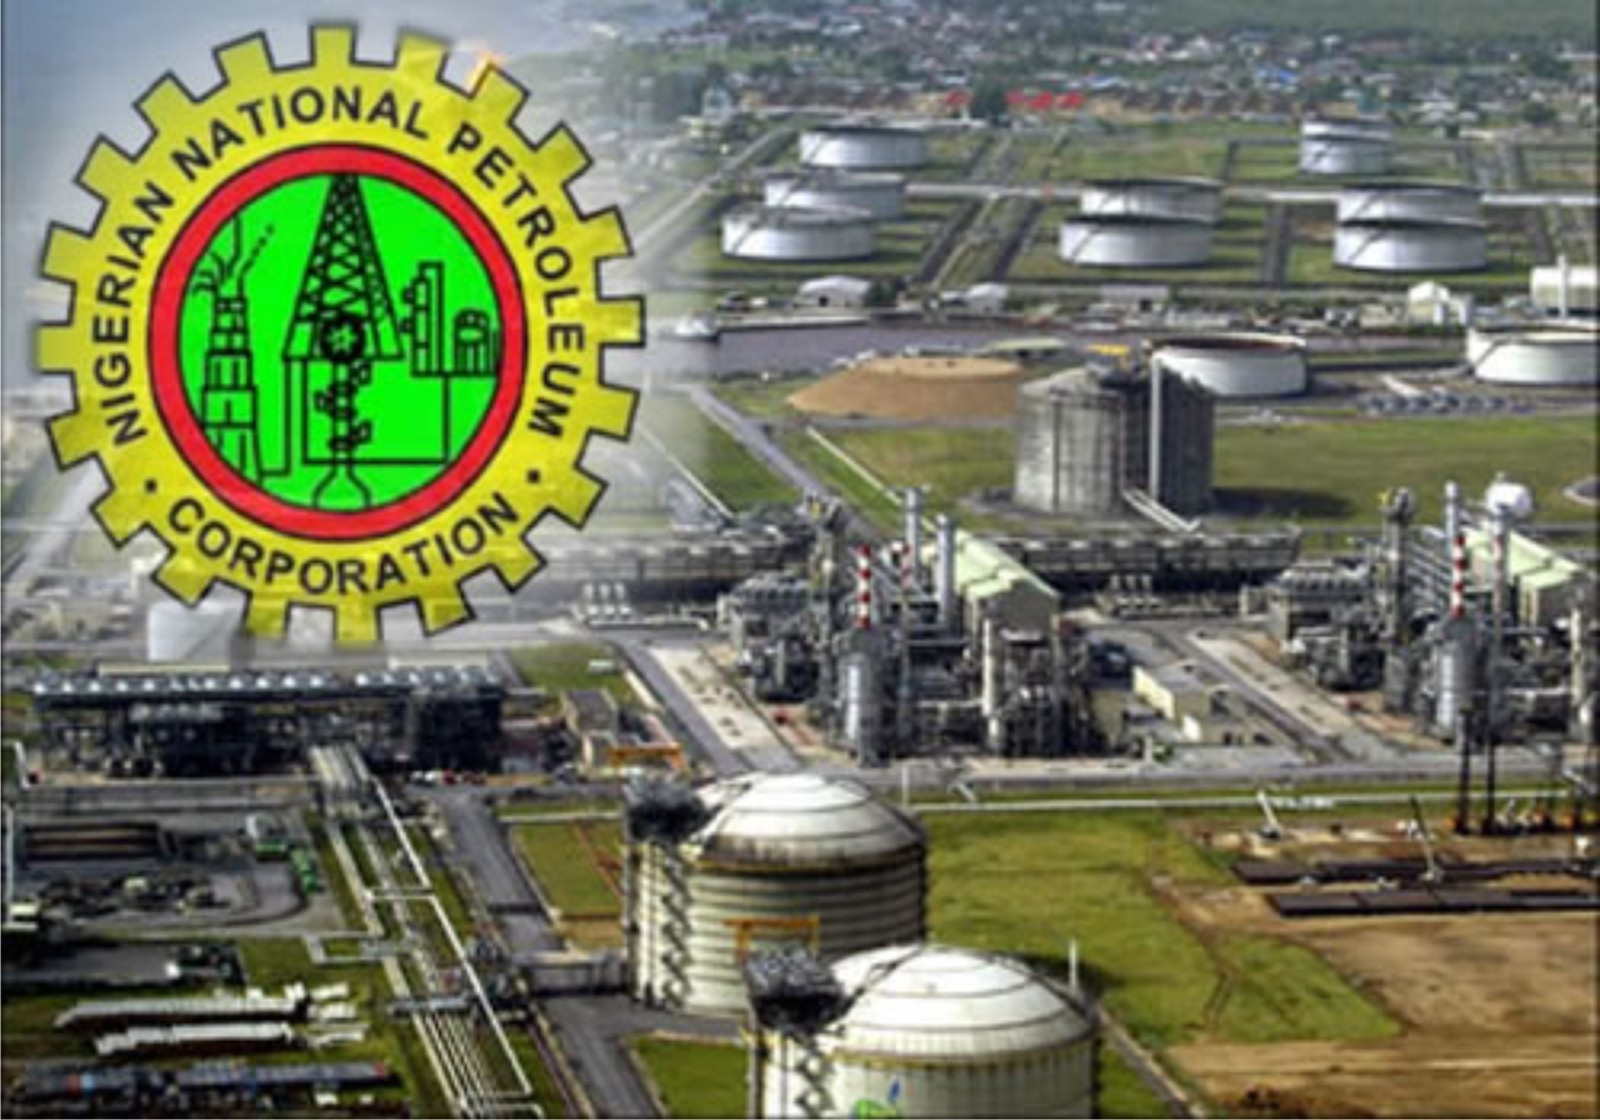 Lingering scarcity : NNPC says it has increased fuel supply